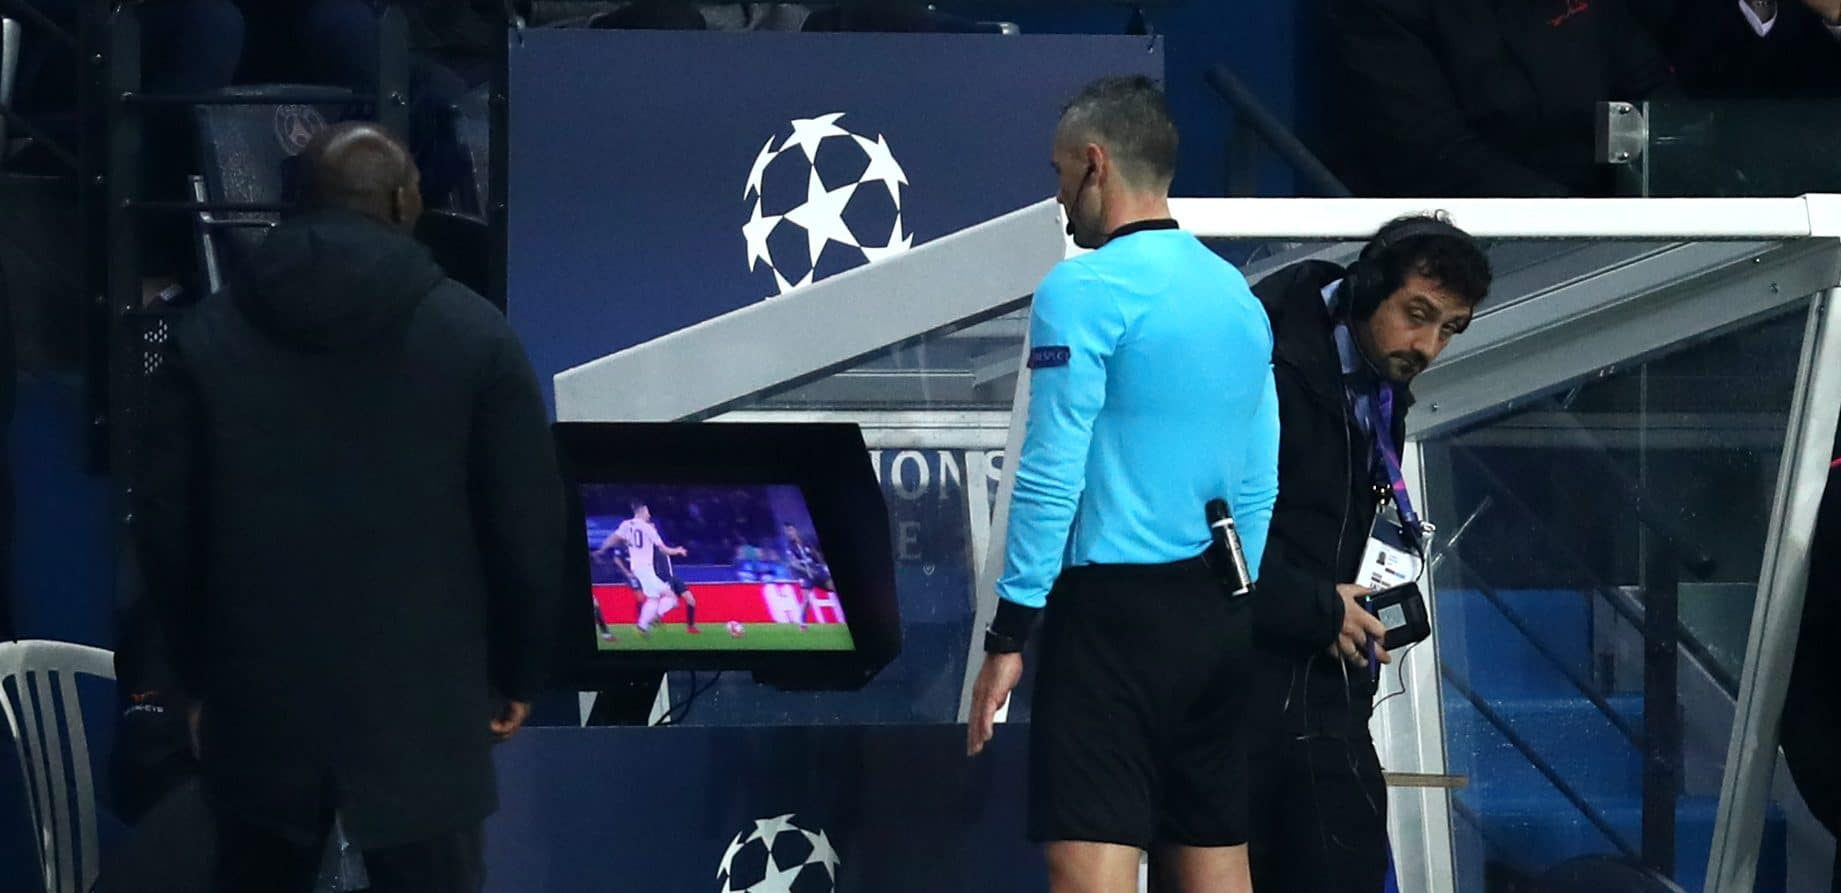 the problem with var